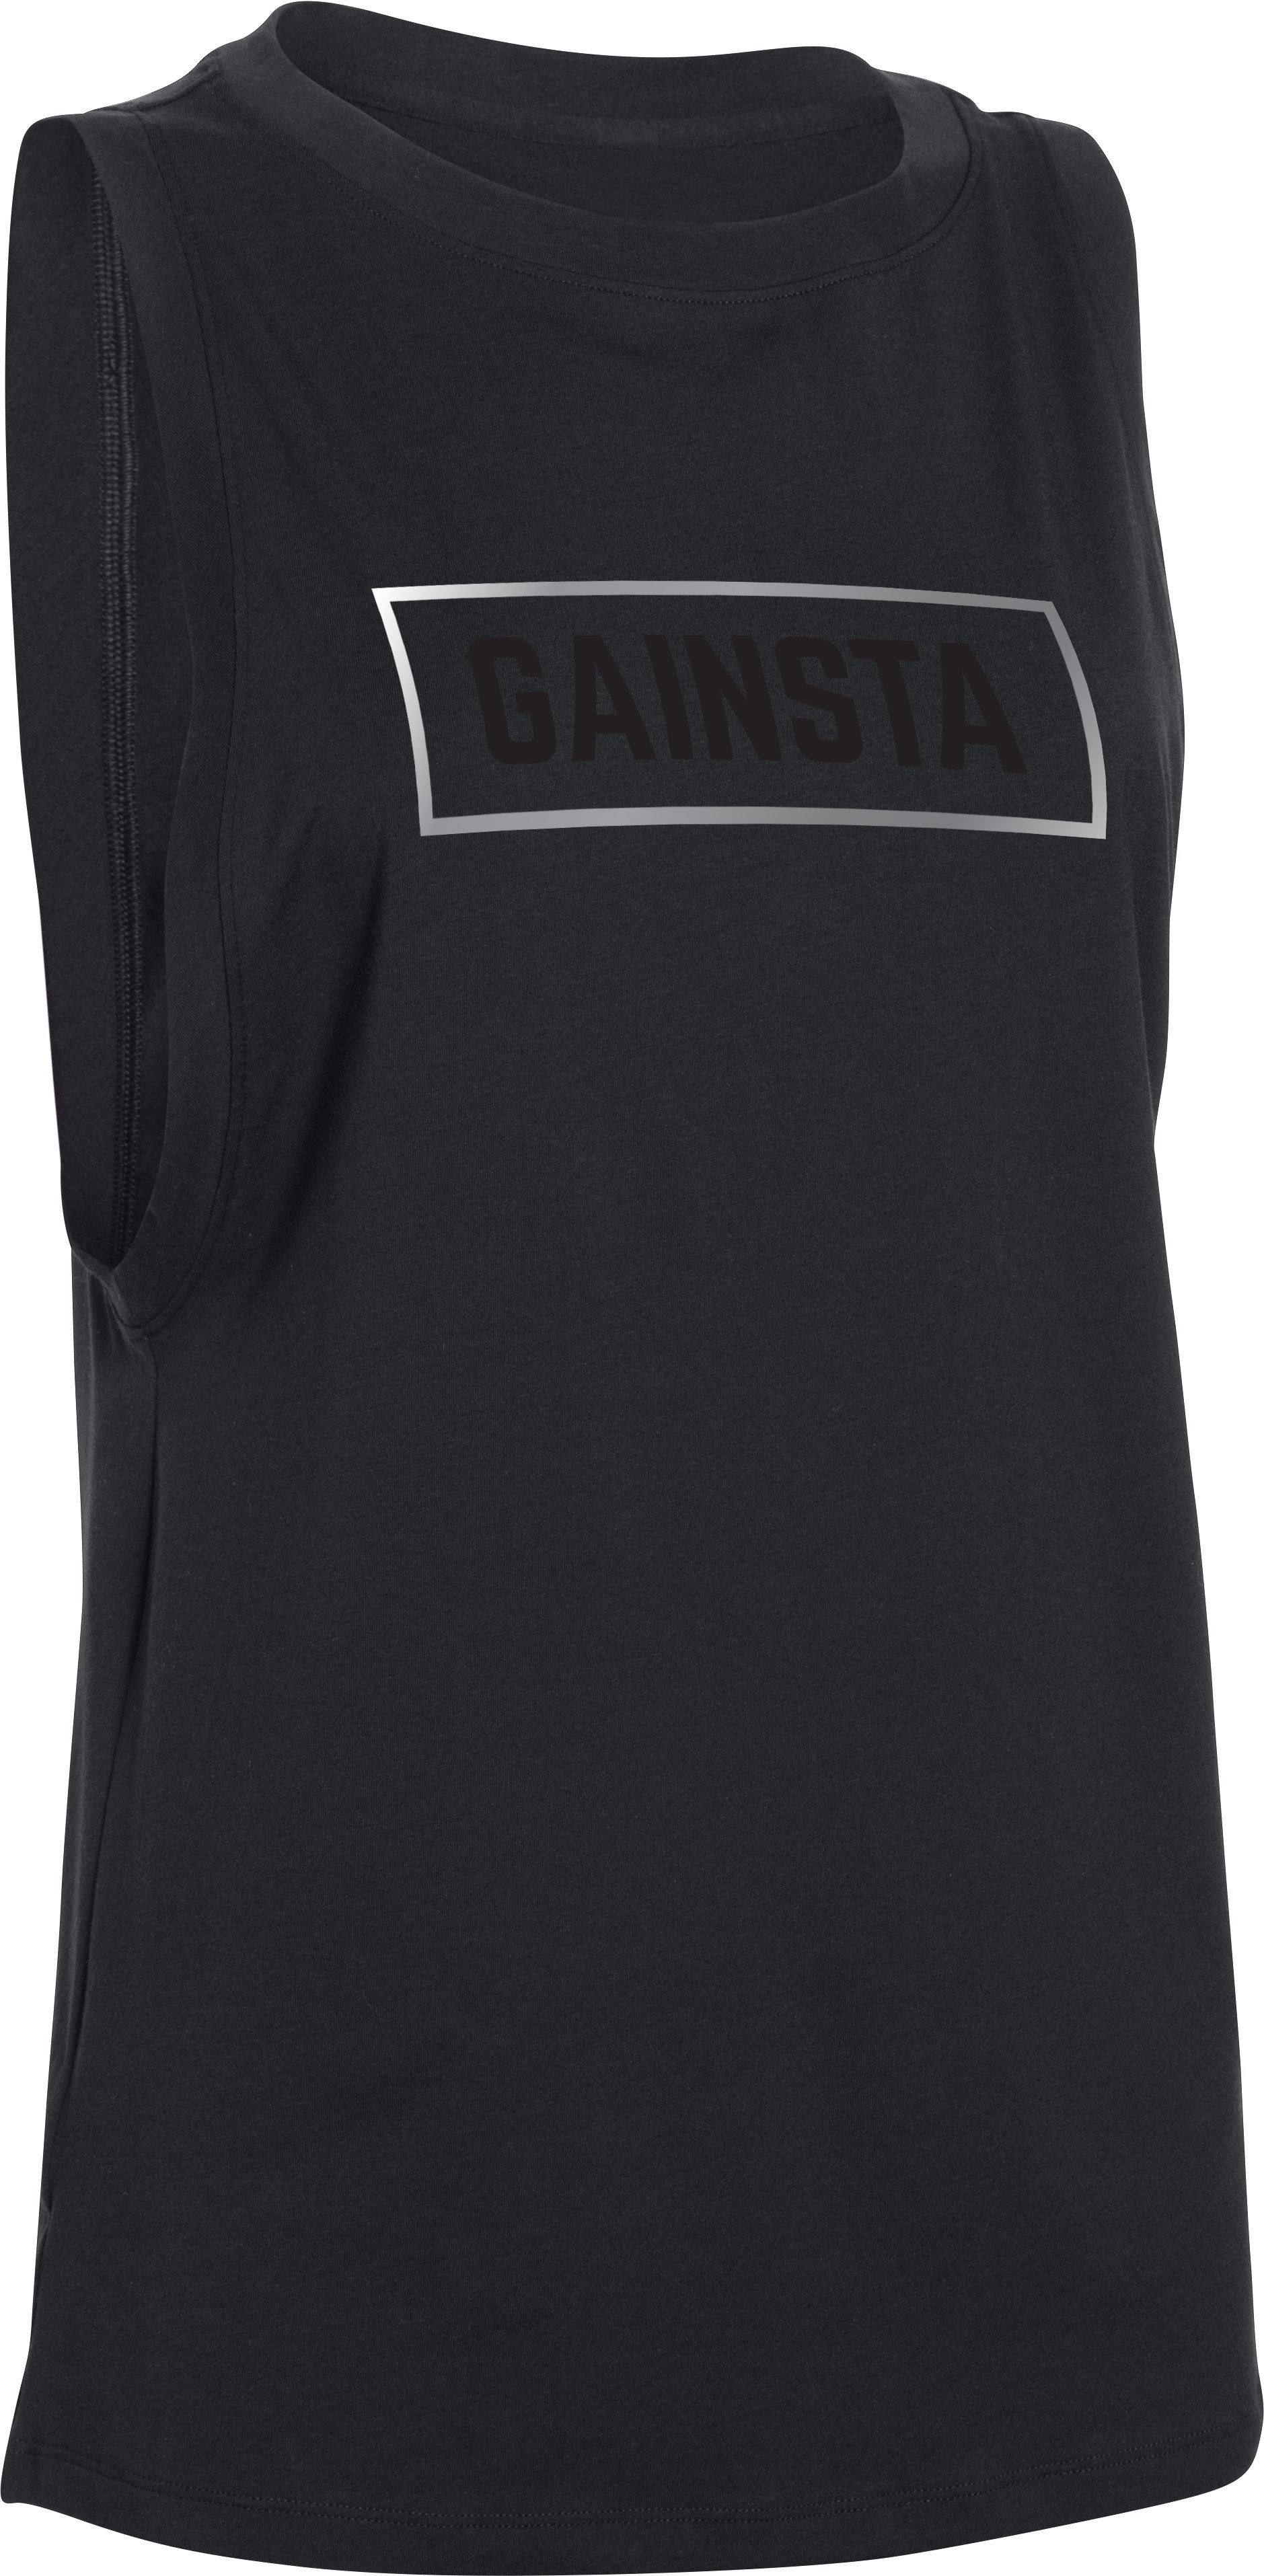 Gainsta Muscle Tank, Black